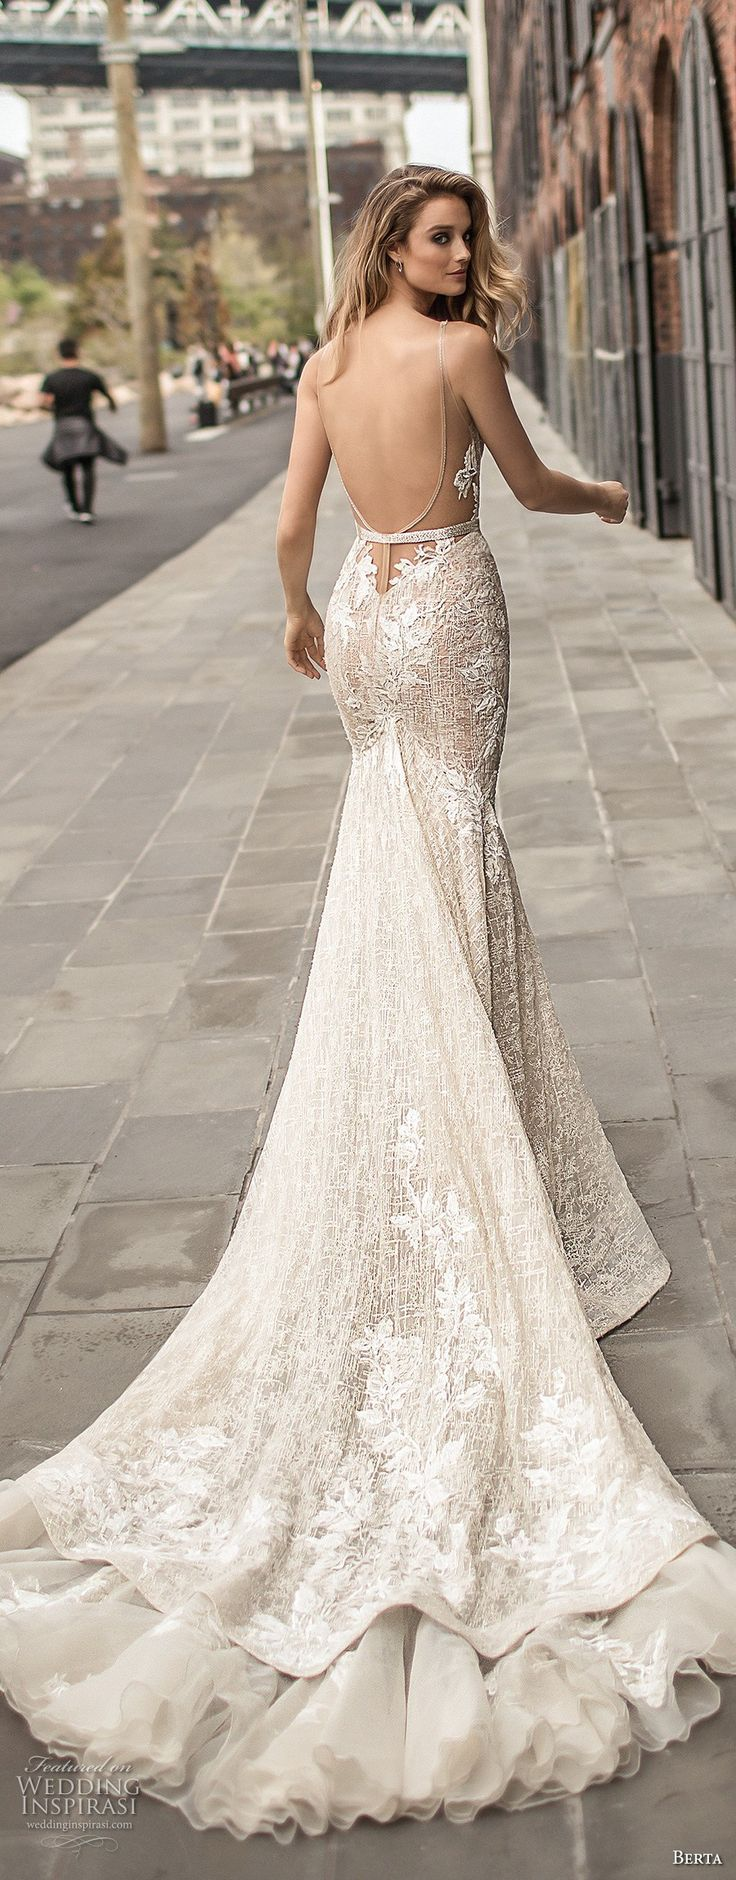 Best Wedding Dresses Images On Pinterest Marriage